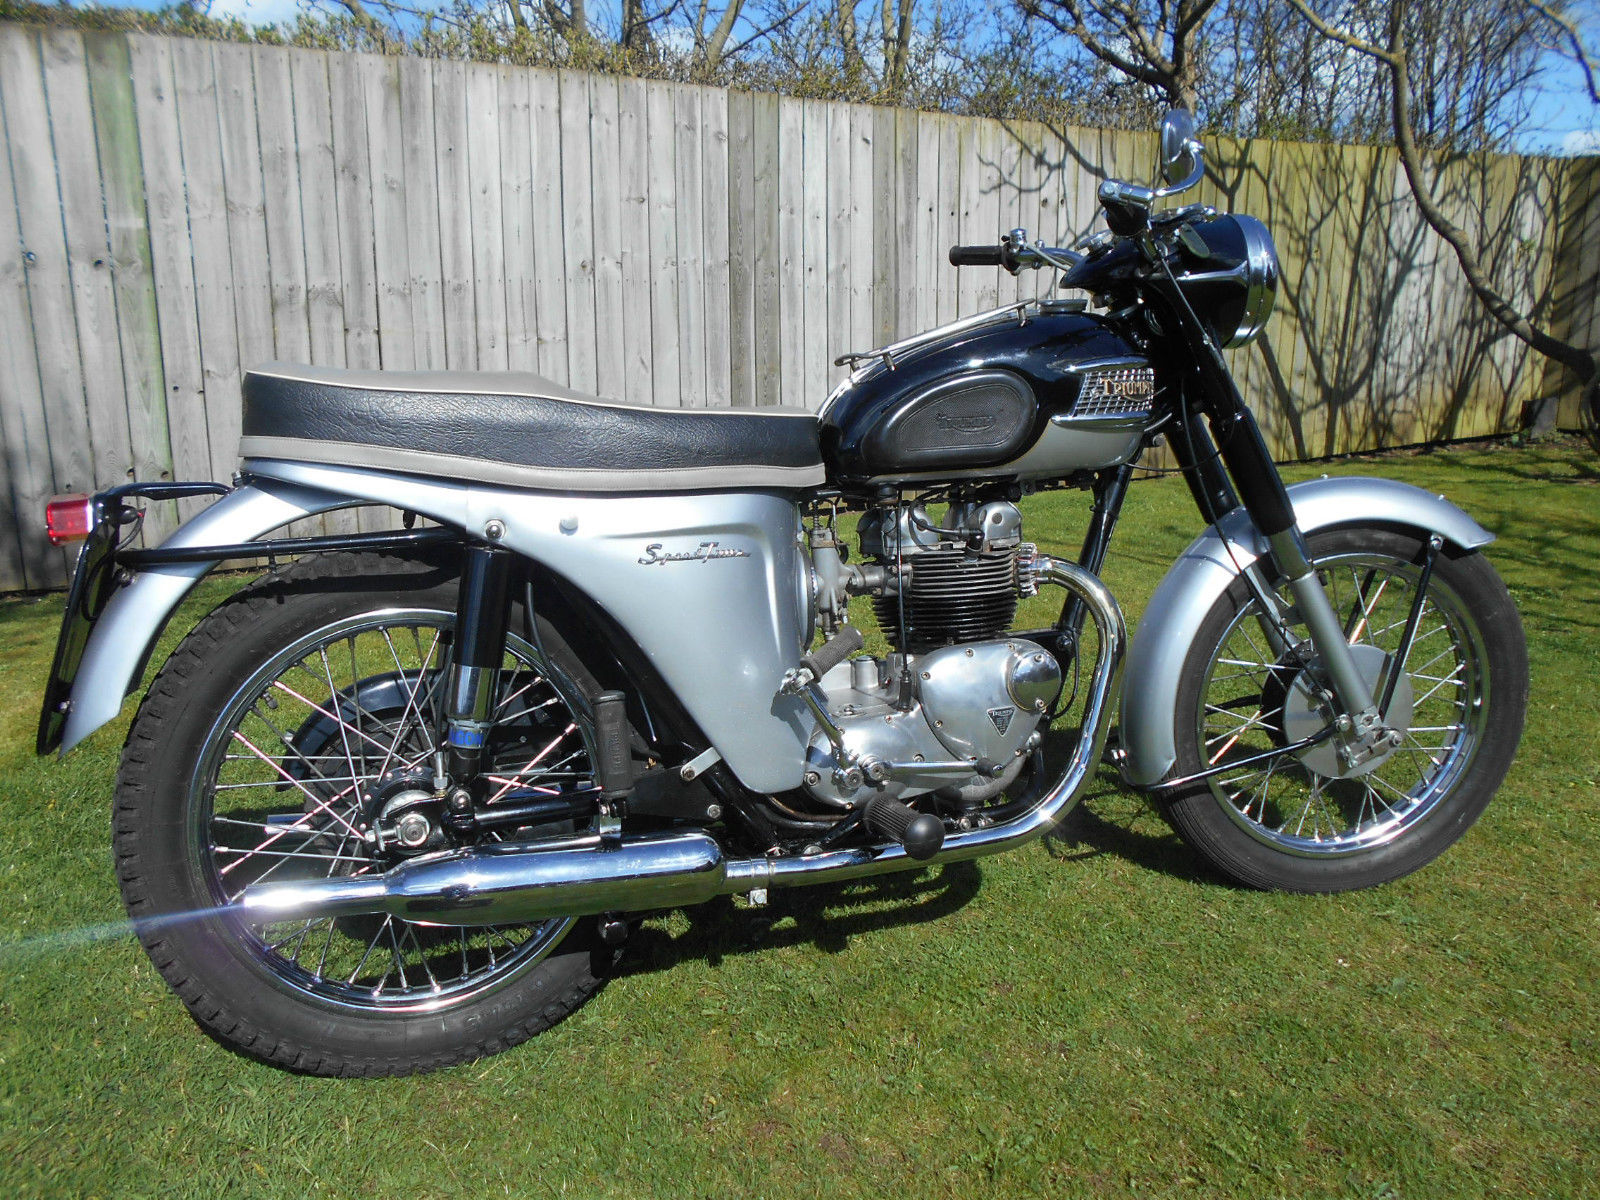 Triumph Speed Twin - 1964 - Engine and Gearbox, Kick Start, Wheels, Timing Cover and Points Cover.